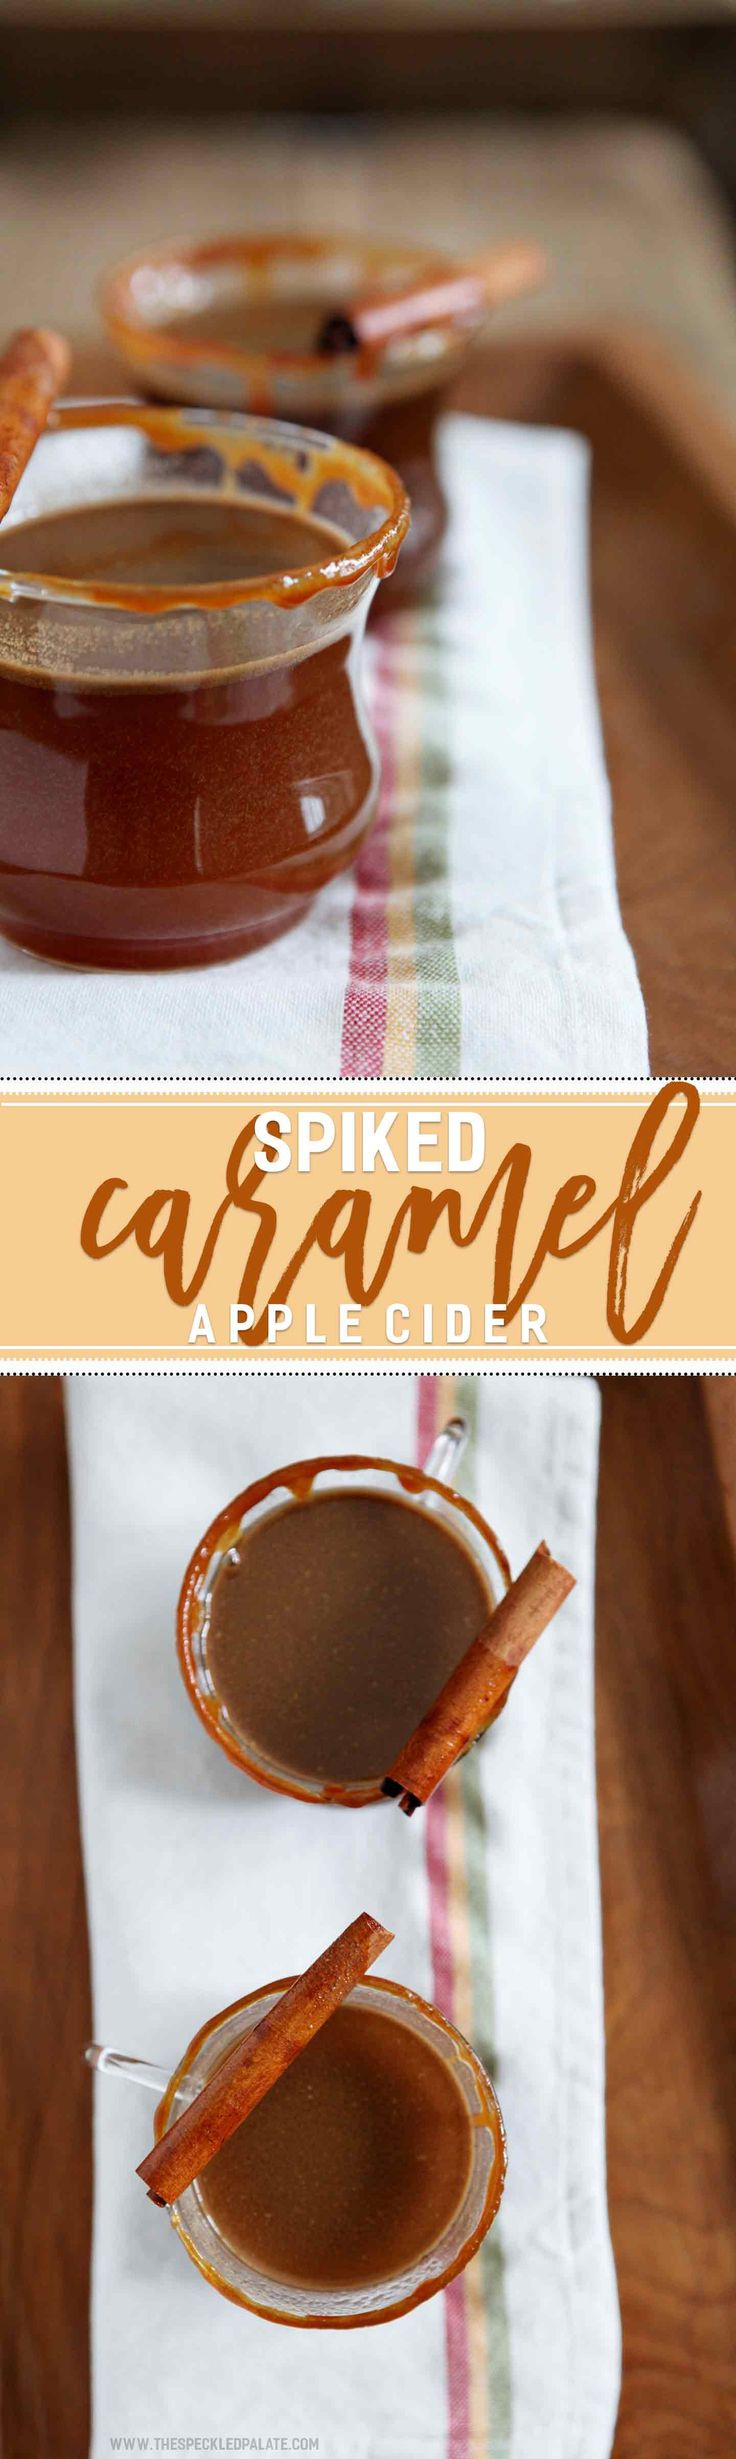 Apple Cider Drink | Fall Drink | Spiked Cider | Bourbon Drink | Caramel Drink | Halloween Drink | Halloween Cocktail | Tailgate Cocktail | Drink Recipe | Warm Fall Drink | Warm Drink | Comforting Drink